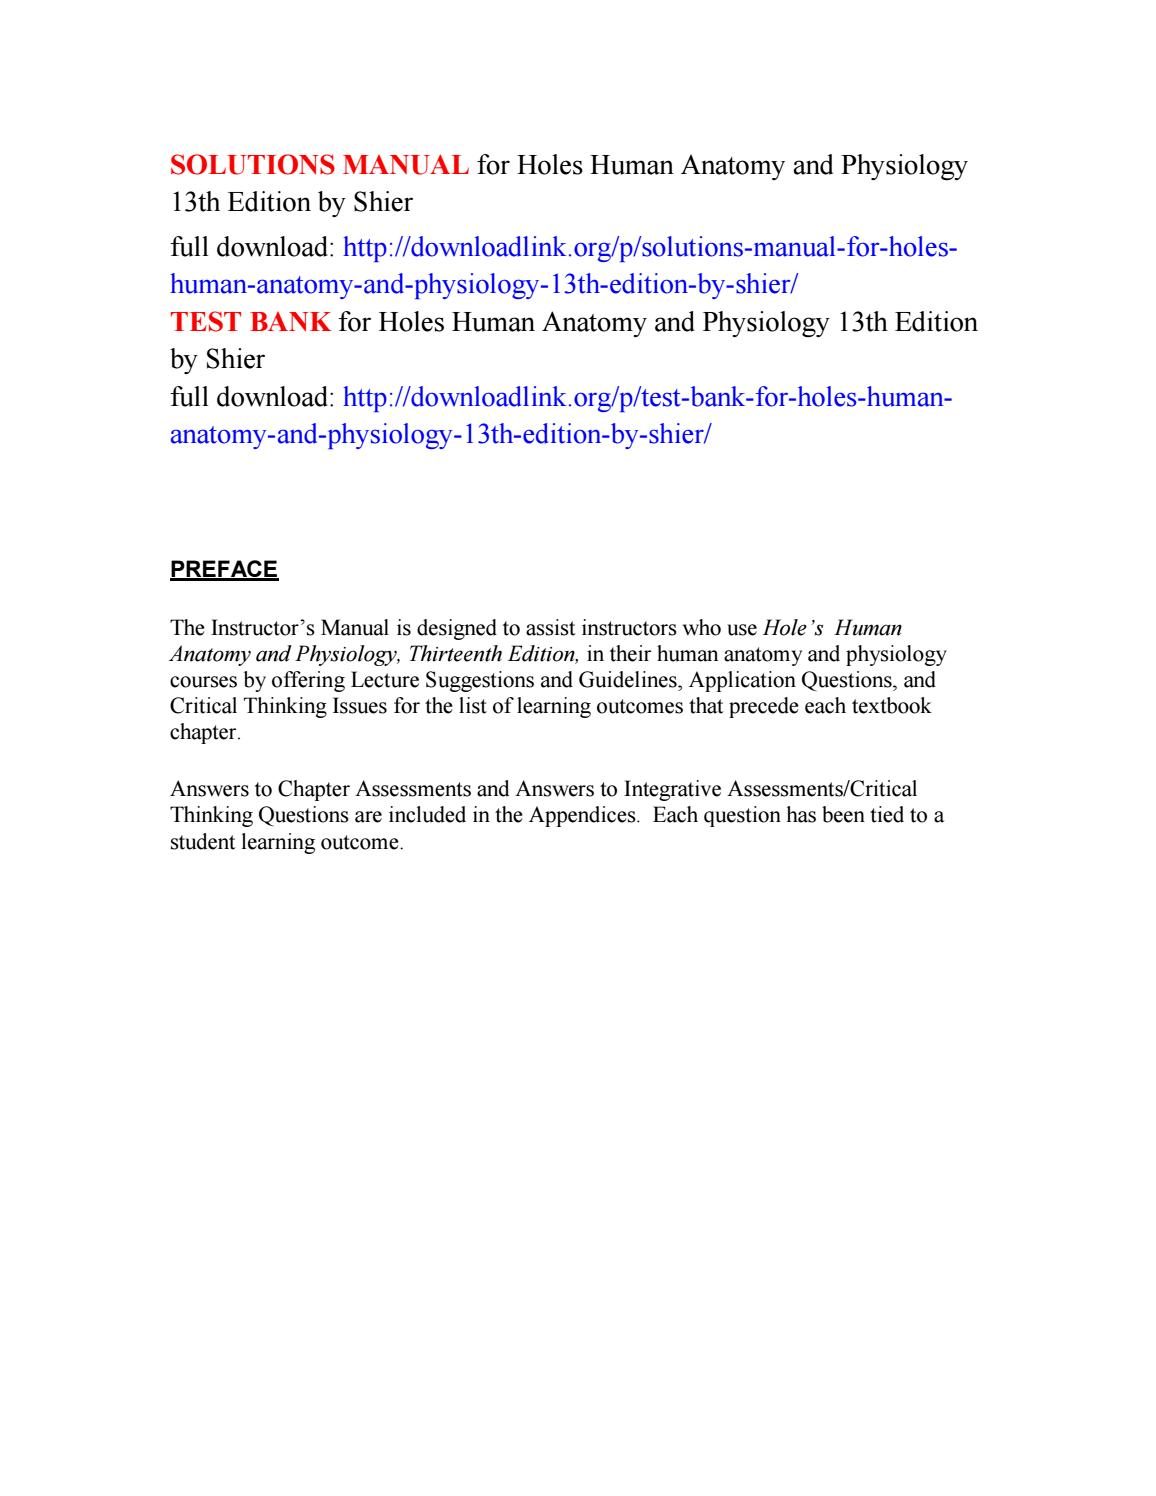 Solutions Manual For Holes Human Anatomy And Physiology 13th Edition